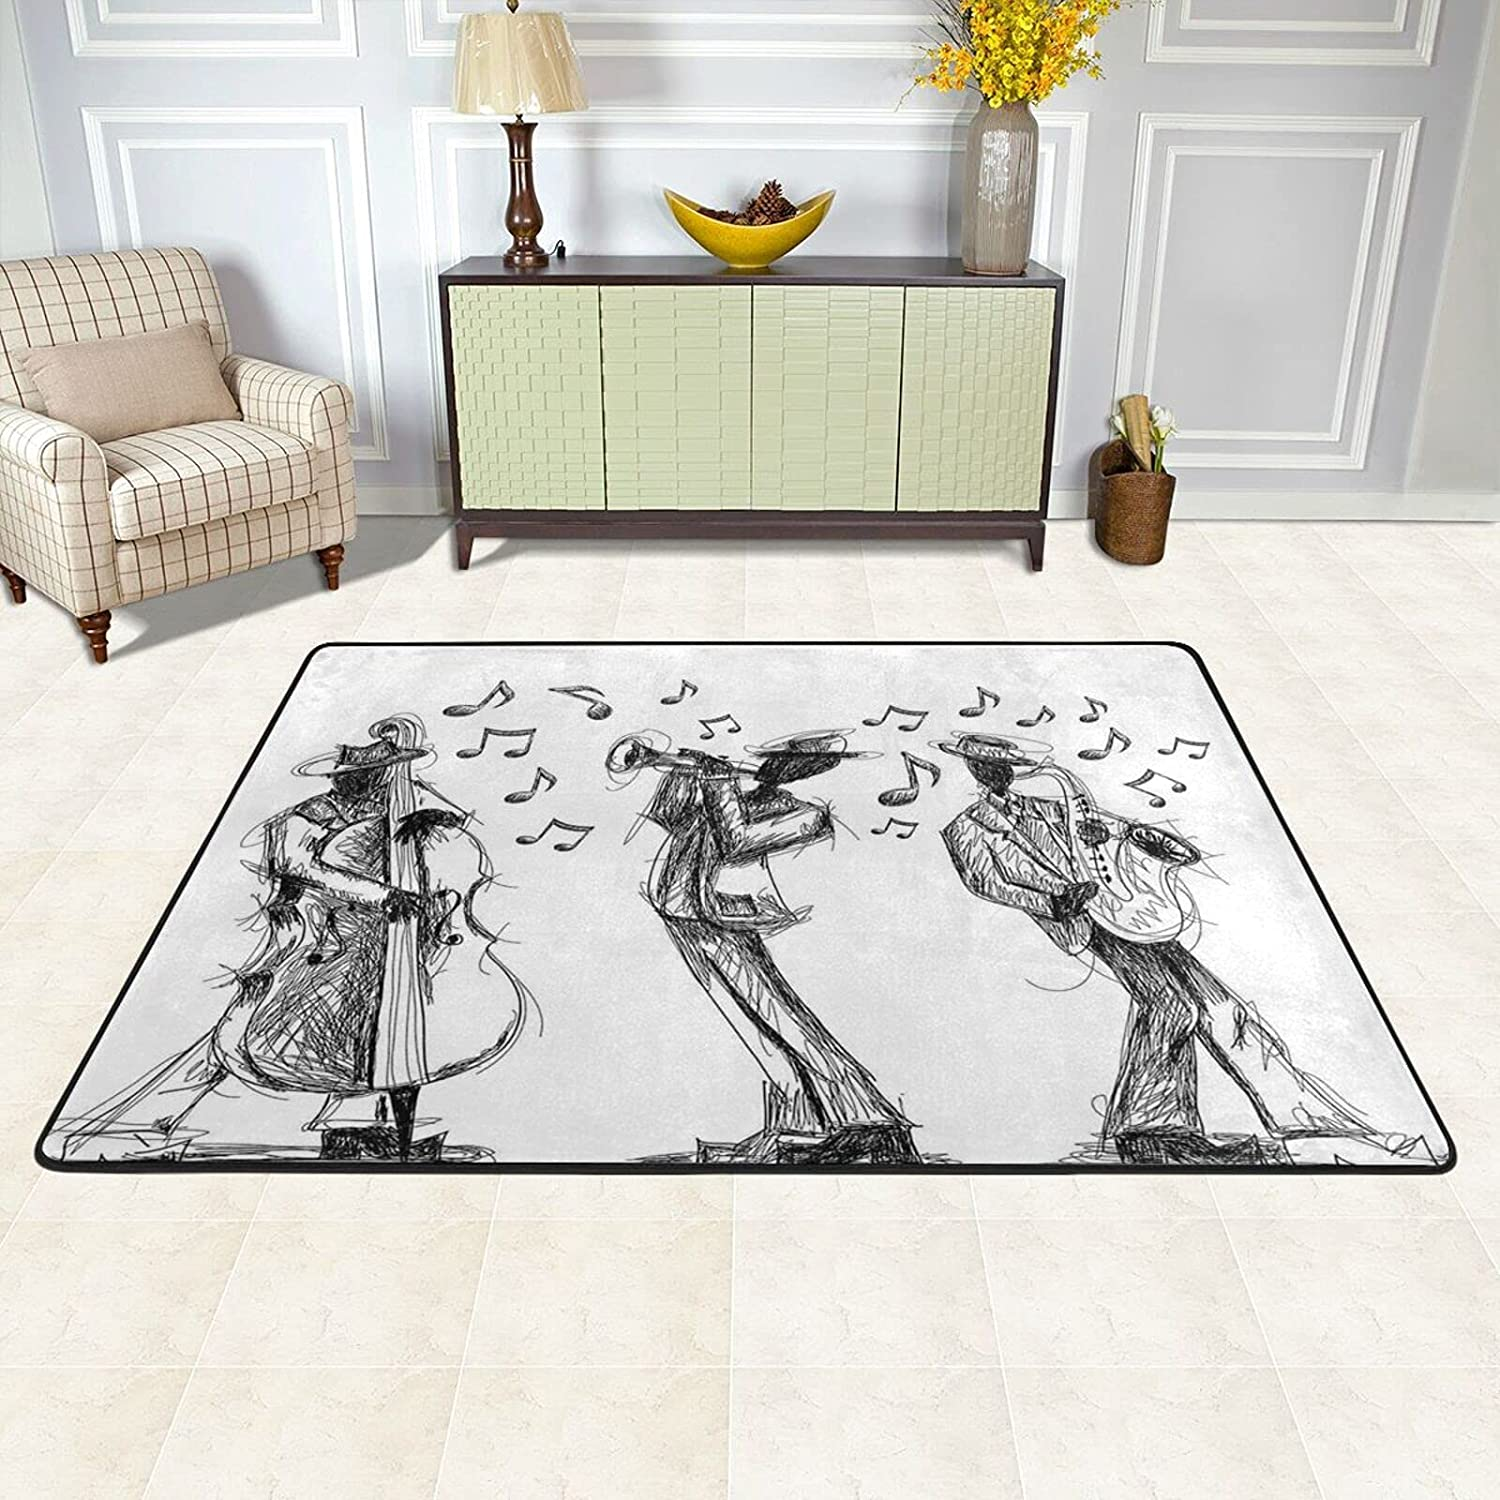 Area Rugs quality assurance Pad for Bedroom Fashionable Living Sketch of Musi Room Jazz Style